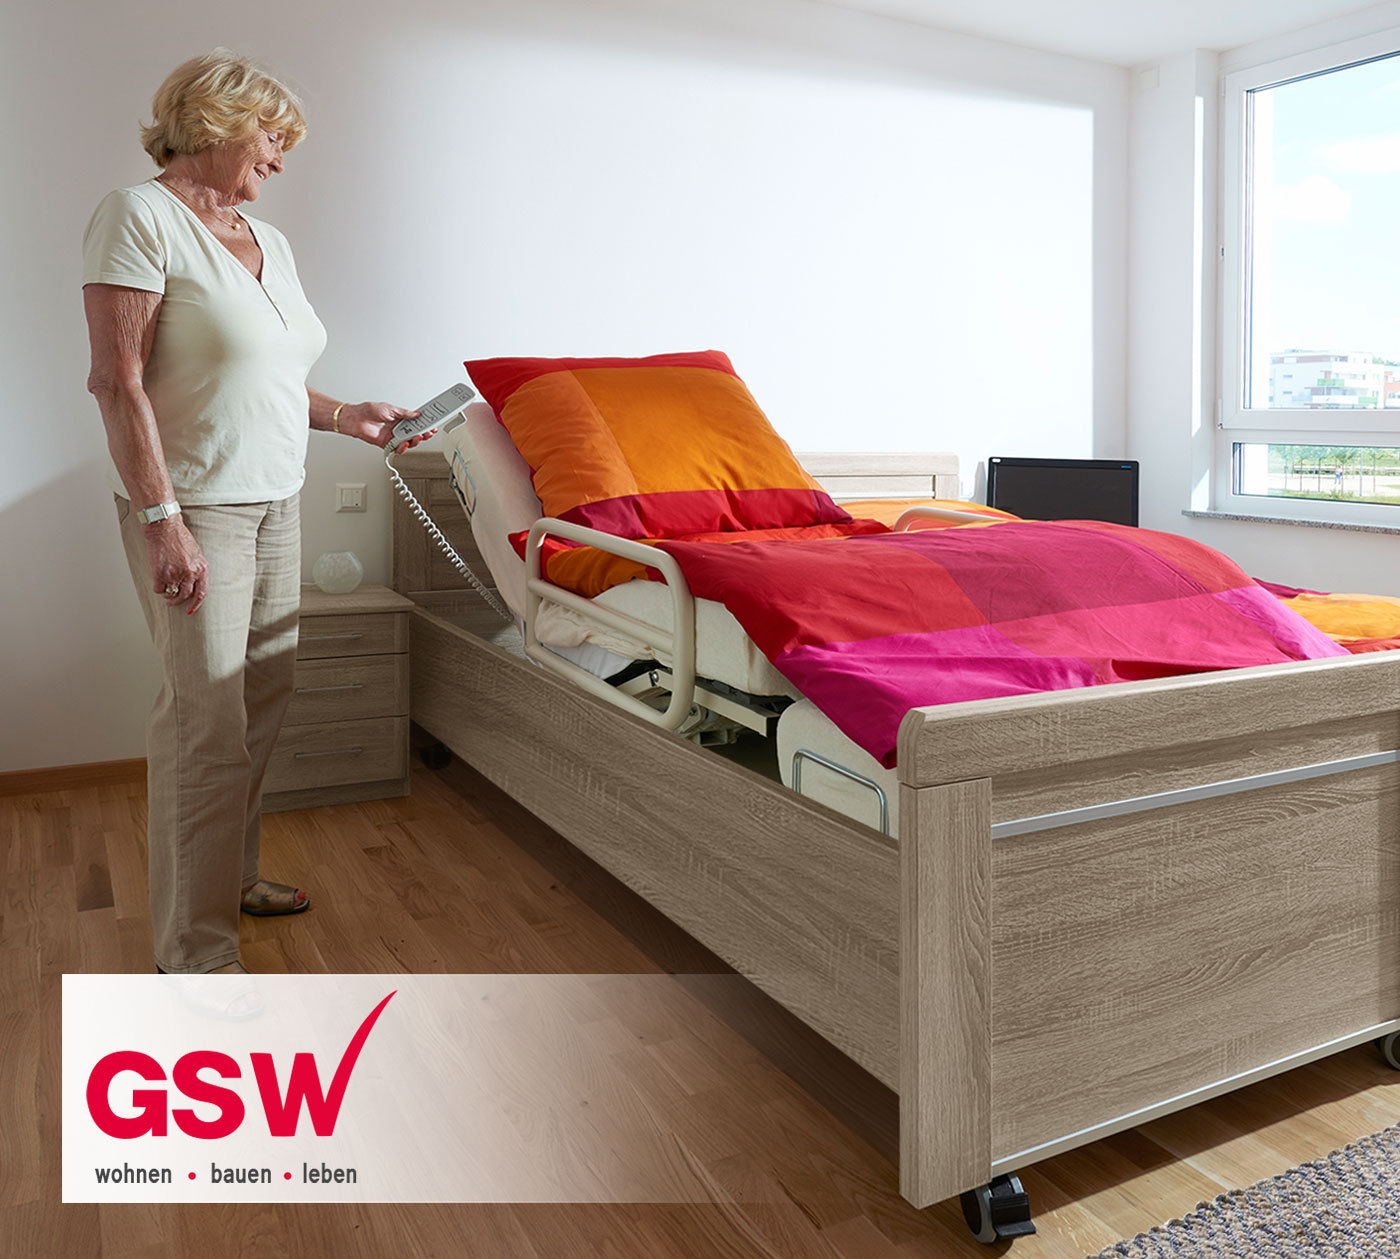 das charmante seniorenbett runcorn in einer musterwohnung der gsw. Black Bedroom Furniture Sets. Home Design Ideas